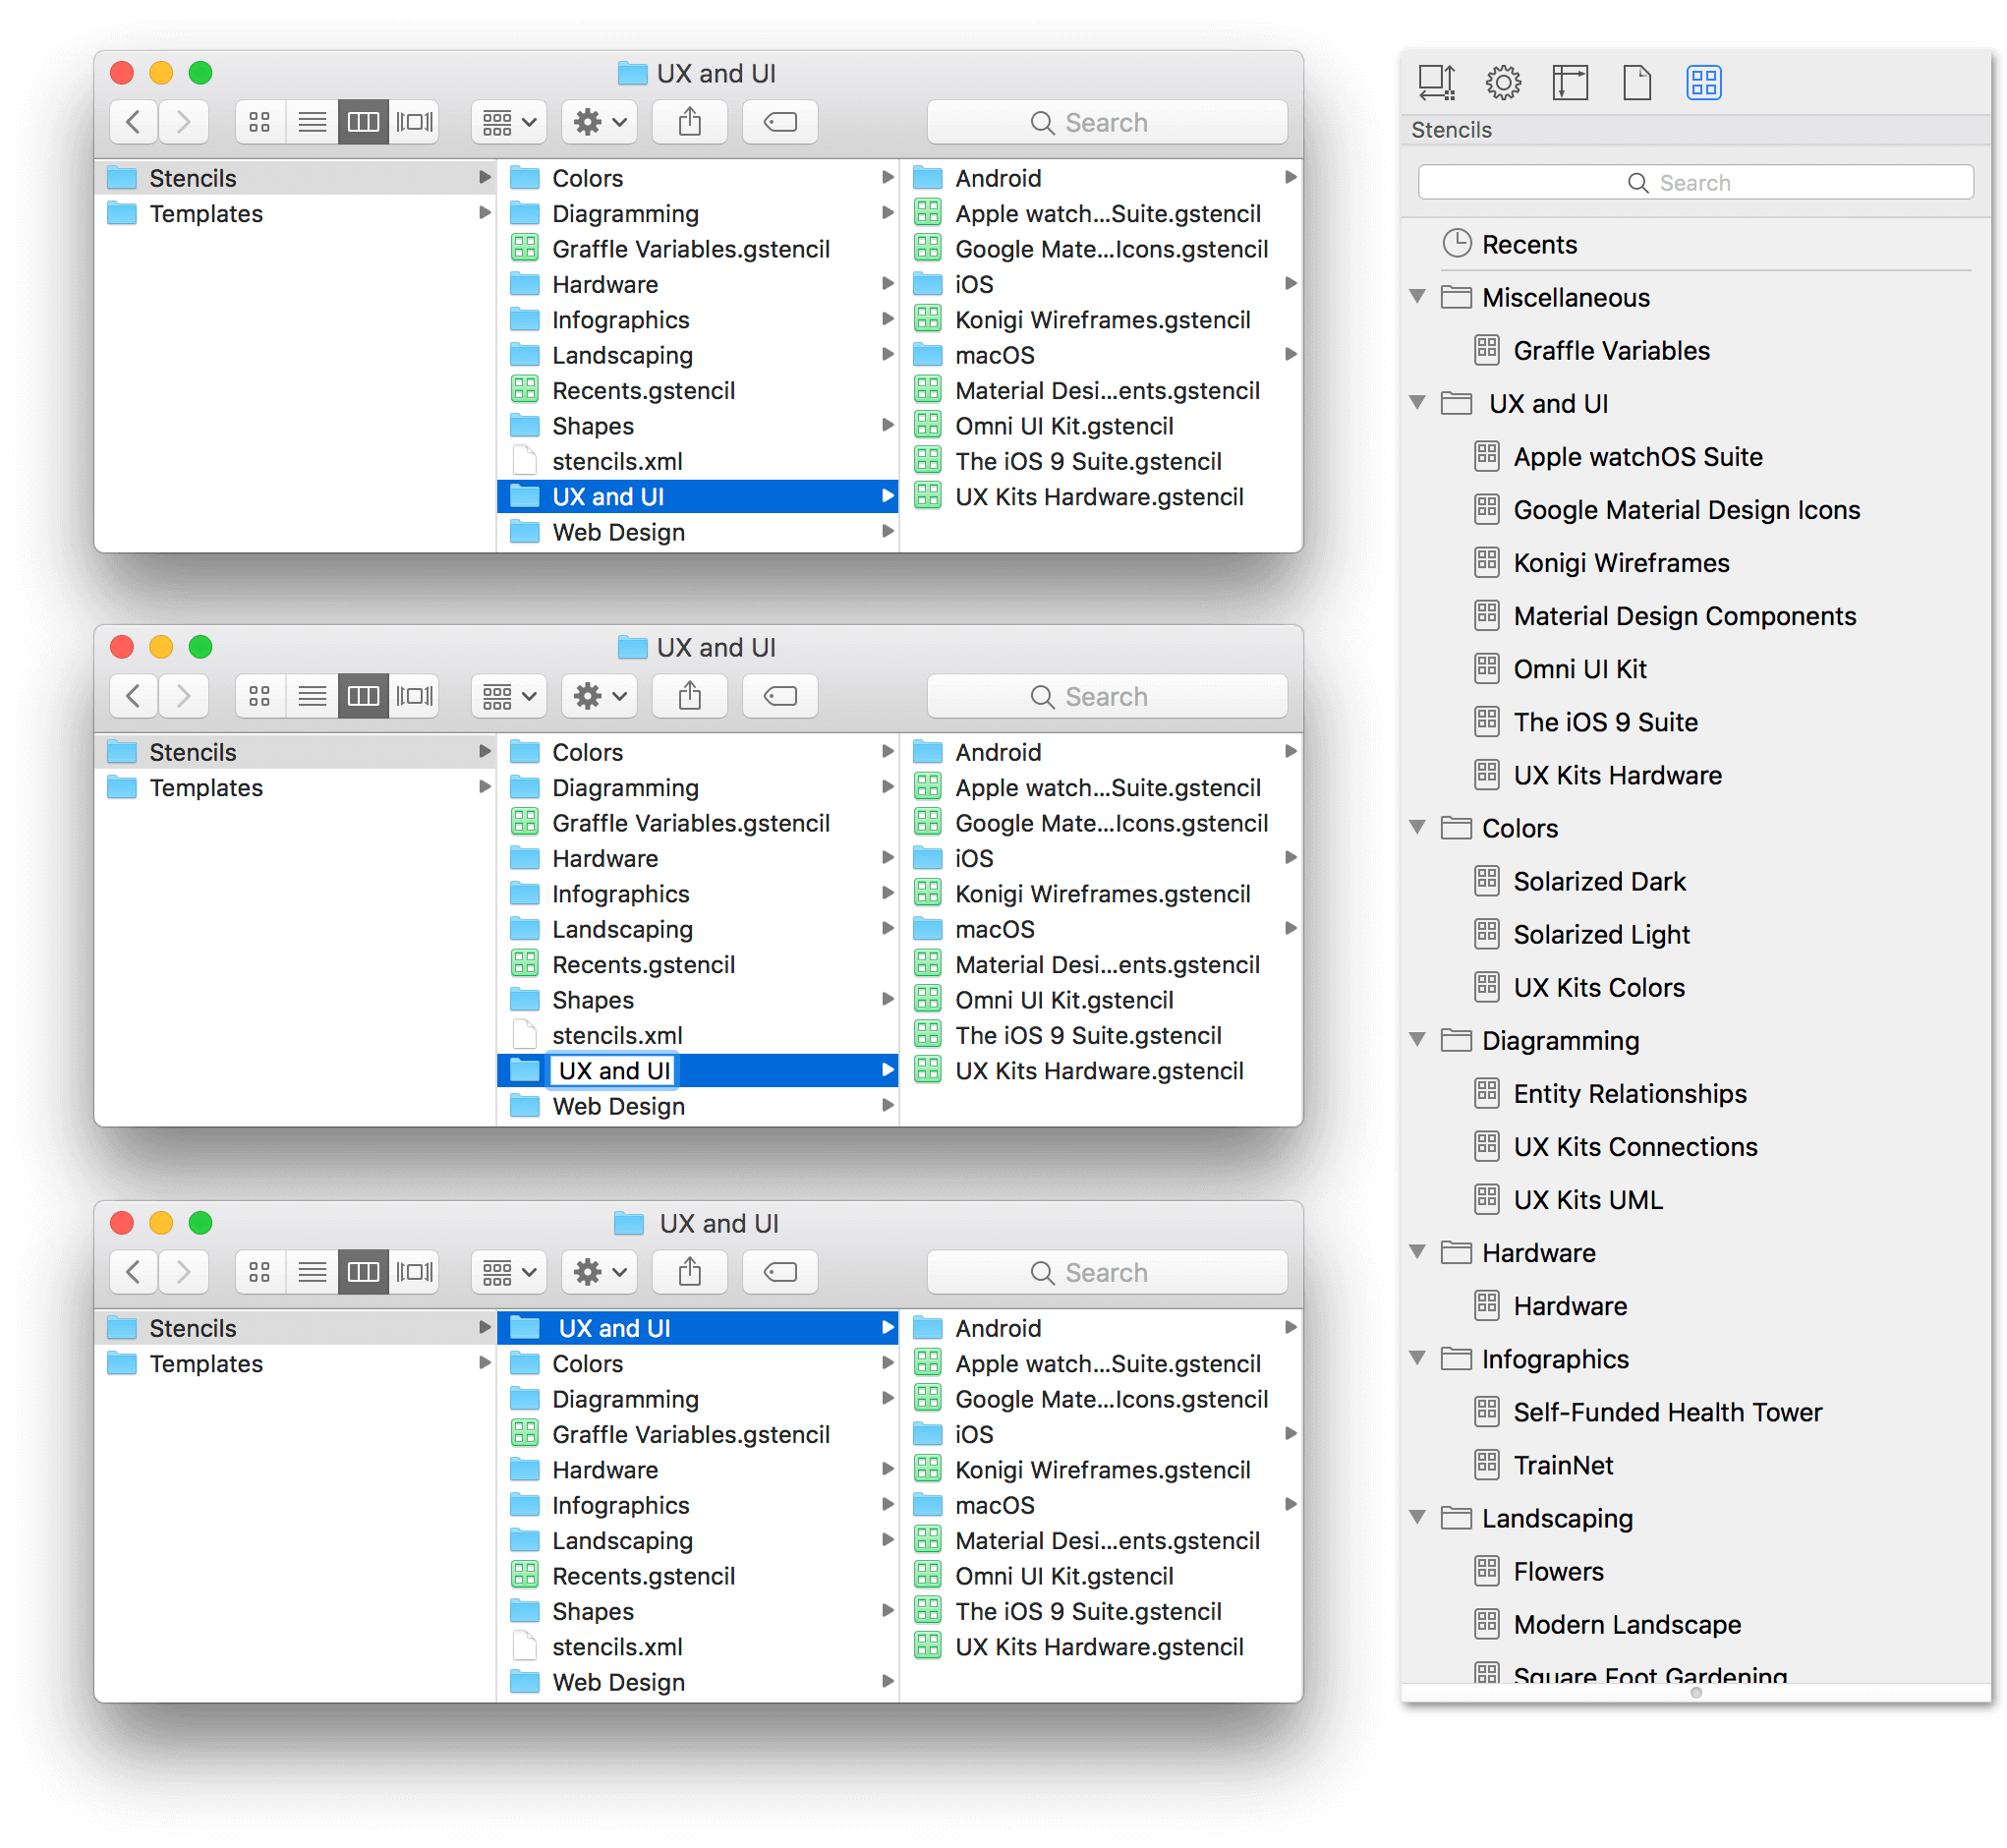 Three Finder windows show the process of renaming the UX and UI folder by adding a space to the front of the folder's name. The Stencil Browser is shown at right, with the UX and UI folder of stencils at the top of the stencils list.